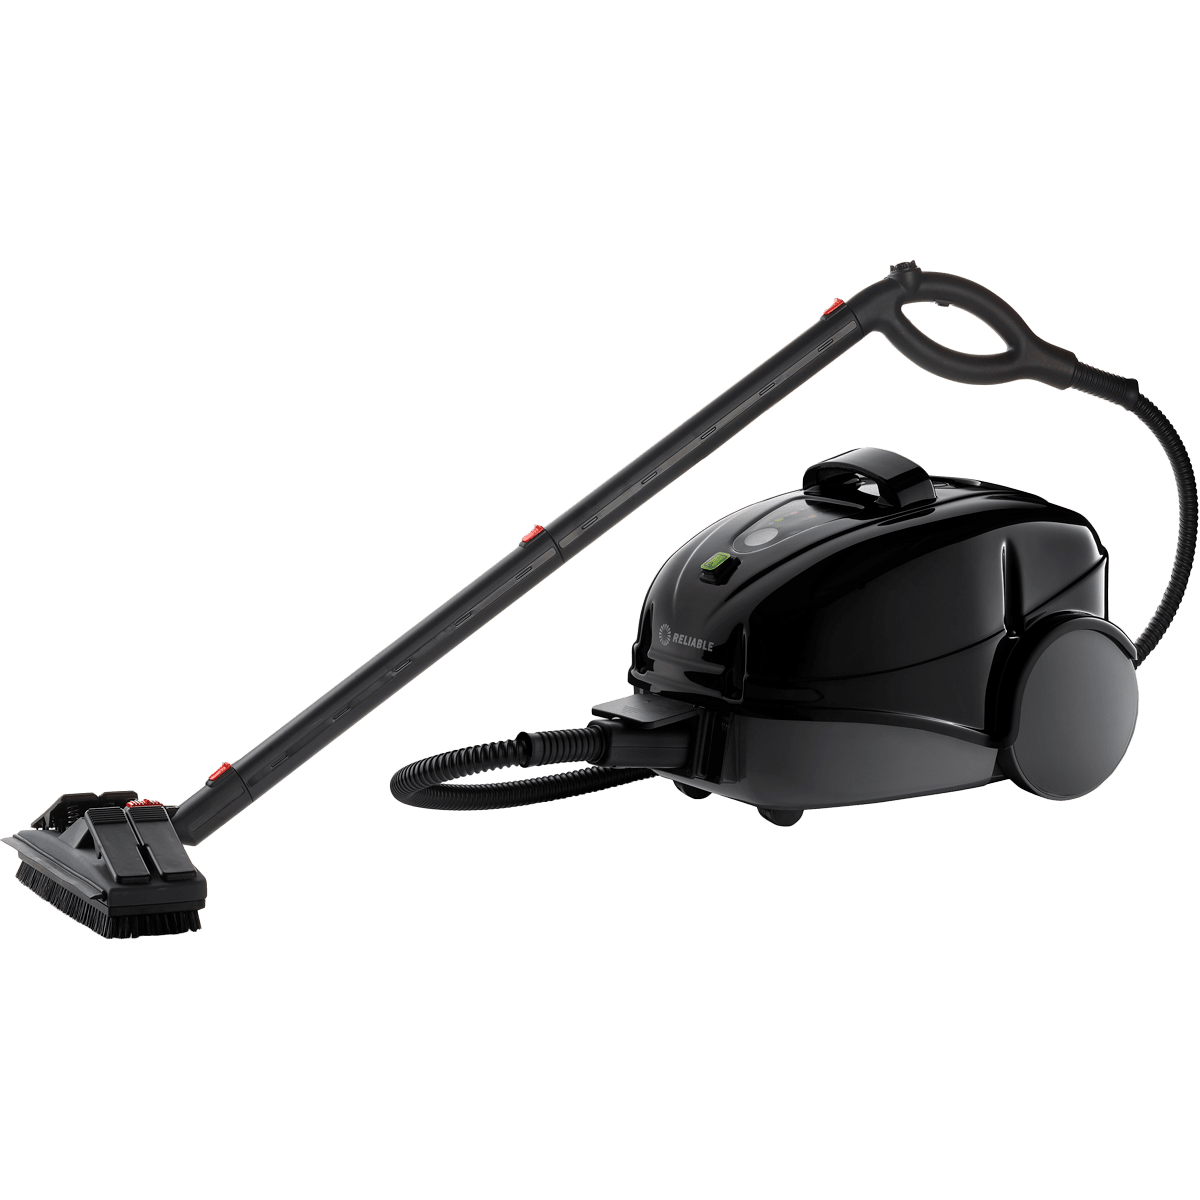 Reliable Brio PRO EP1000 Steam Cleaner